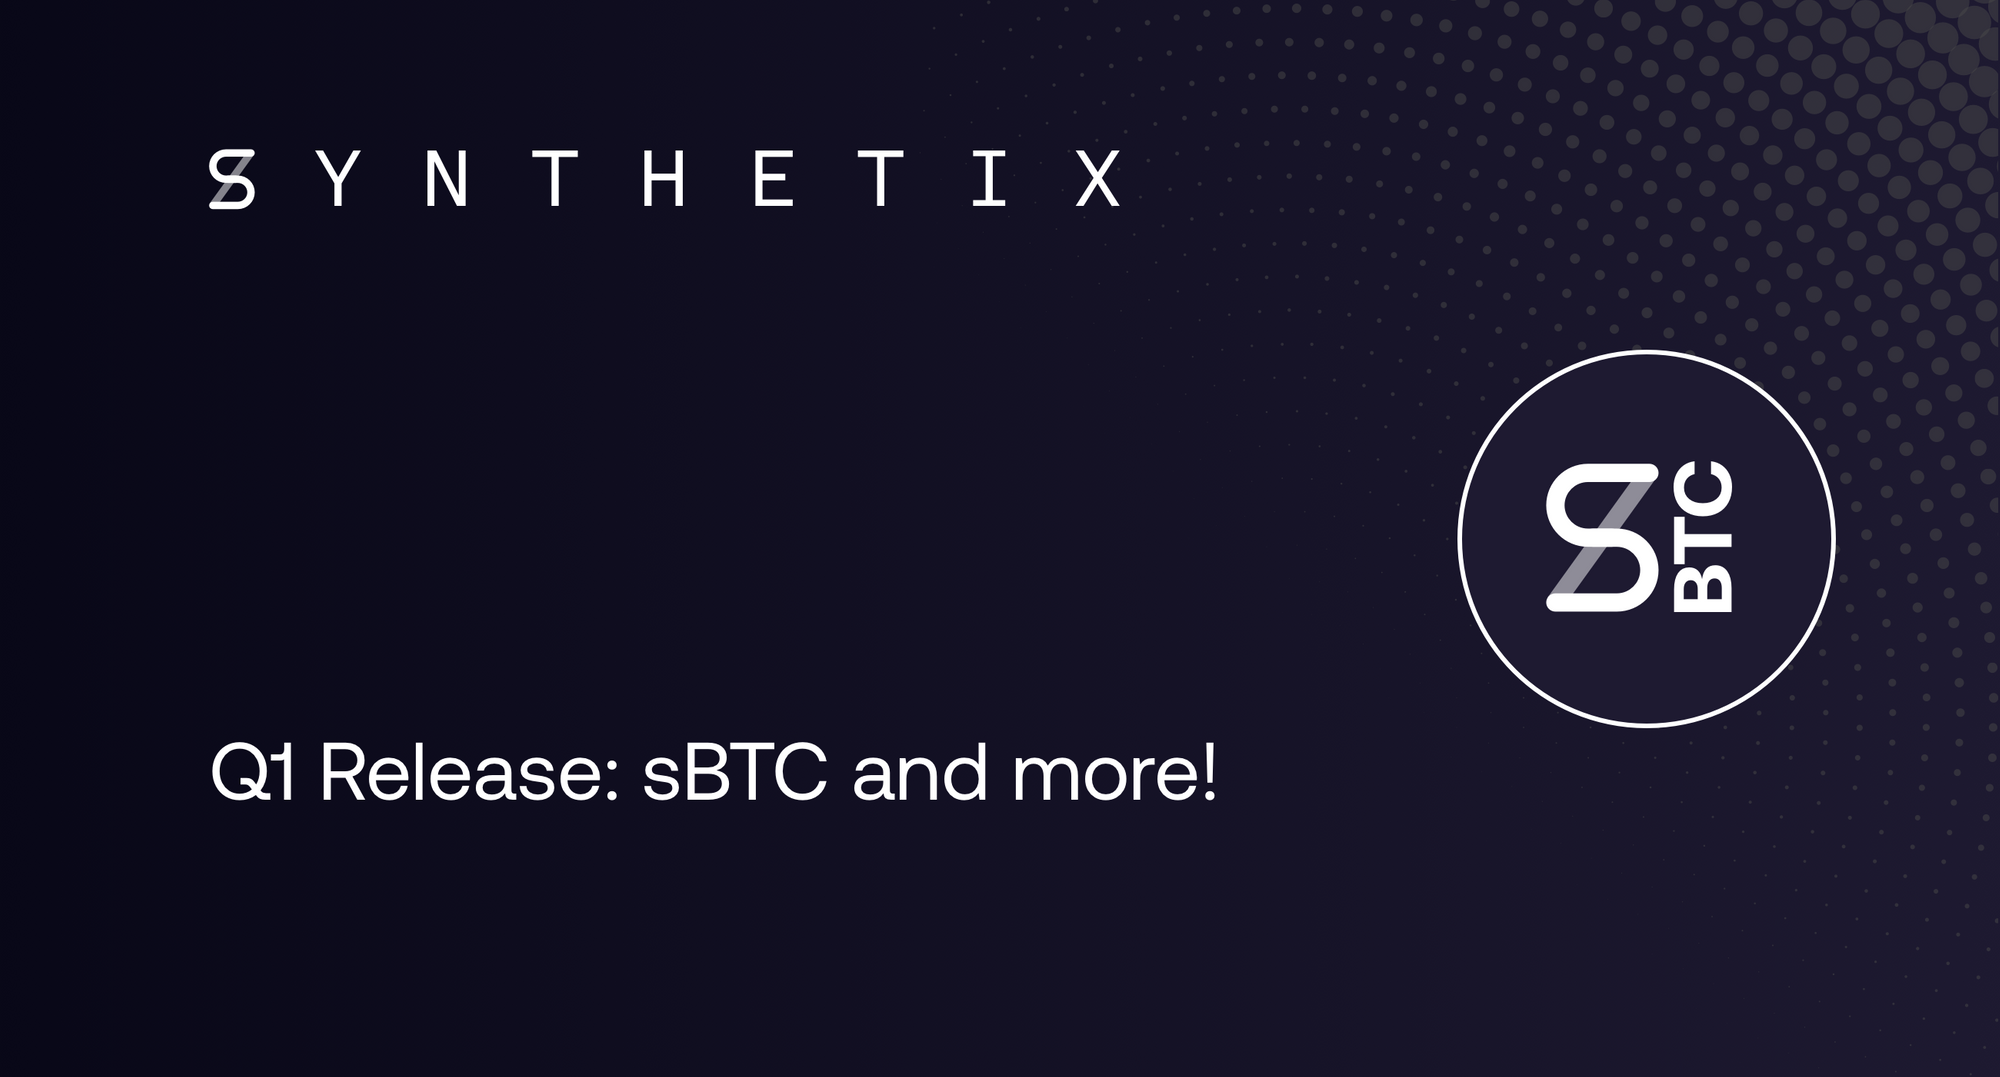 Q1 RELEASE: sBTC and other Synths, Synthetix.Exchange, and no more transfer fees!